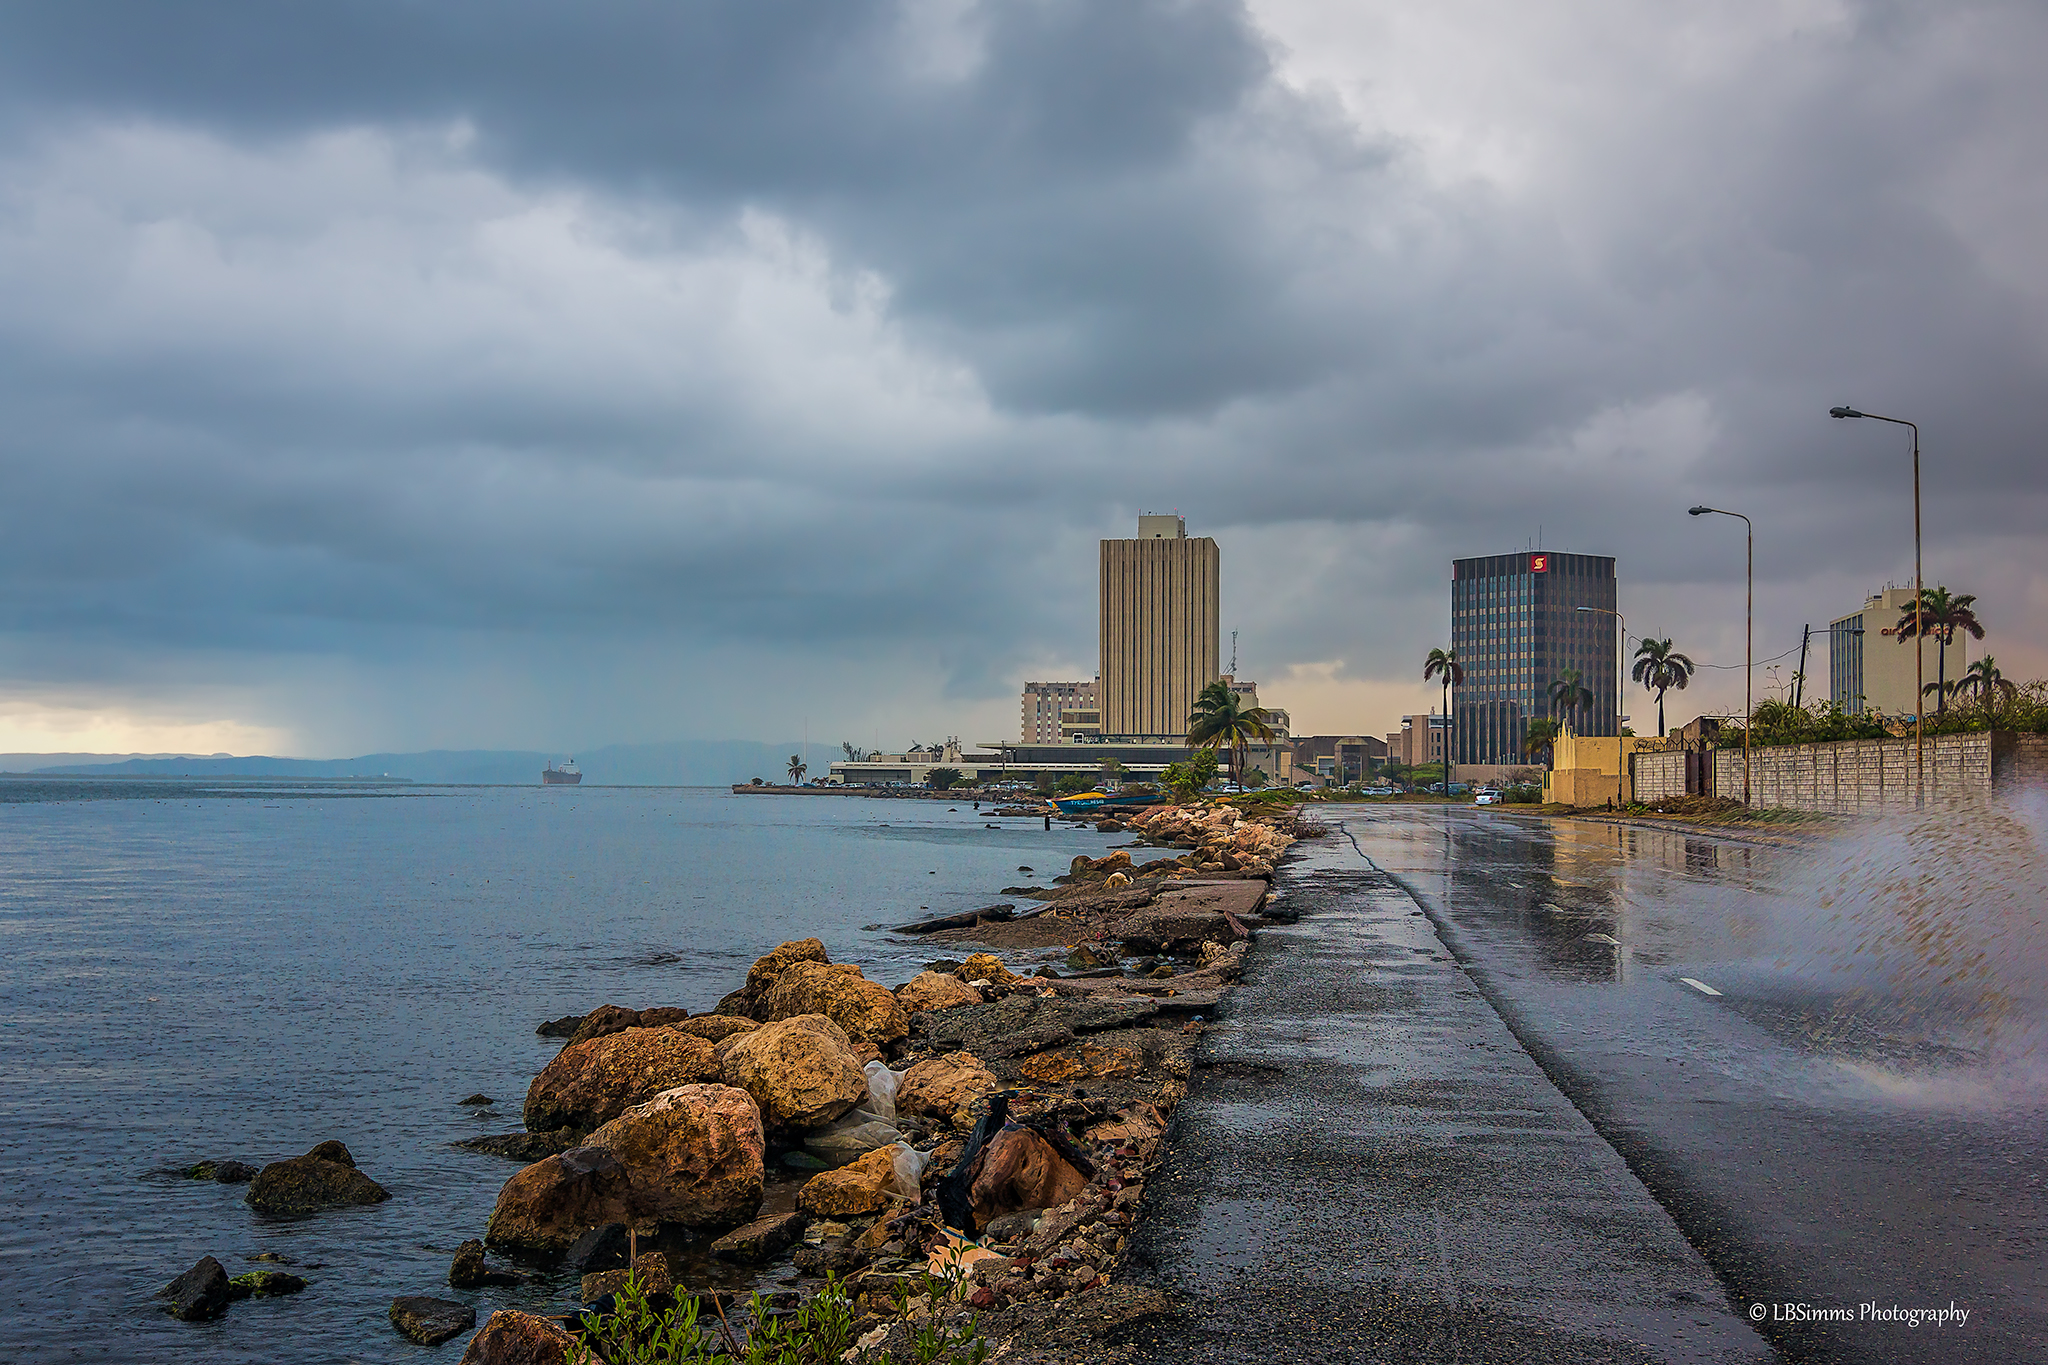 After the rain in Downtown, Kingston, Jamaica.